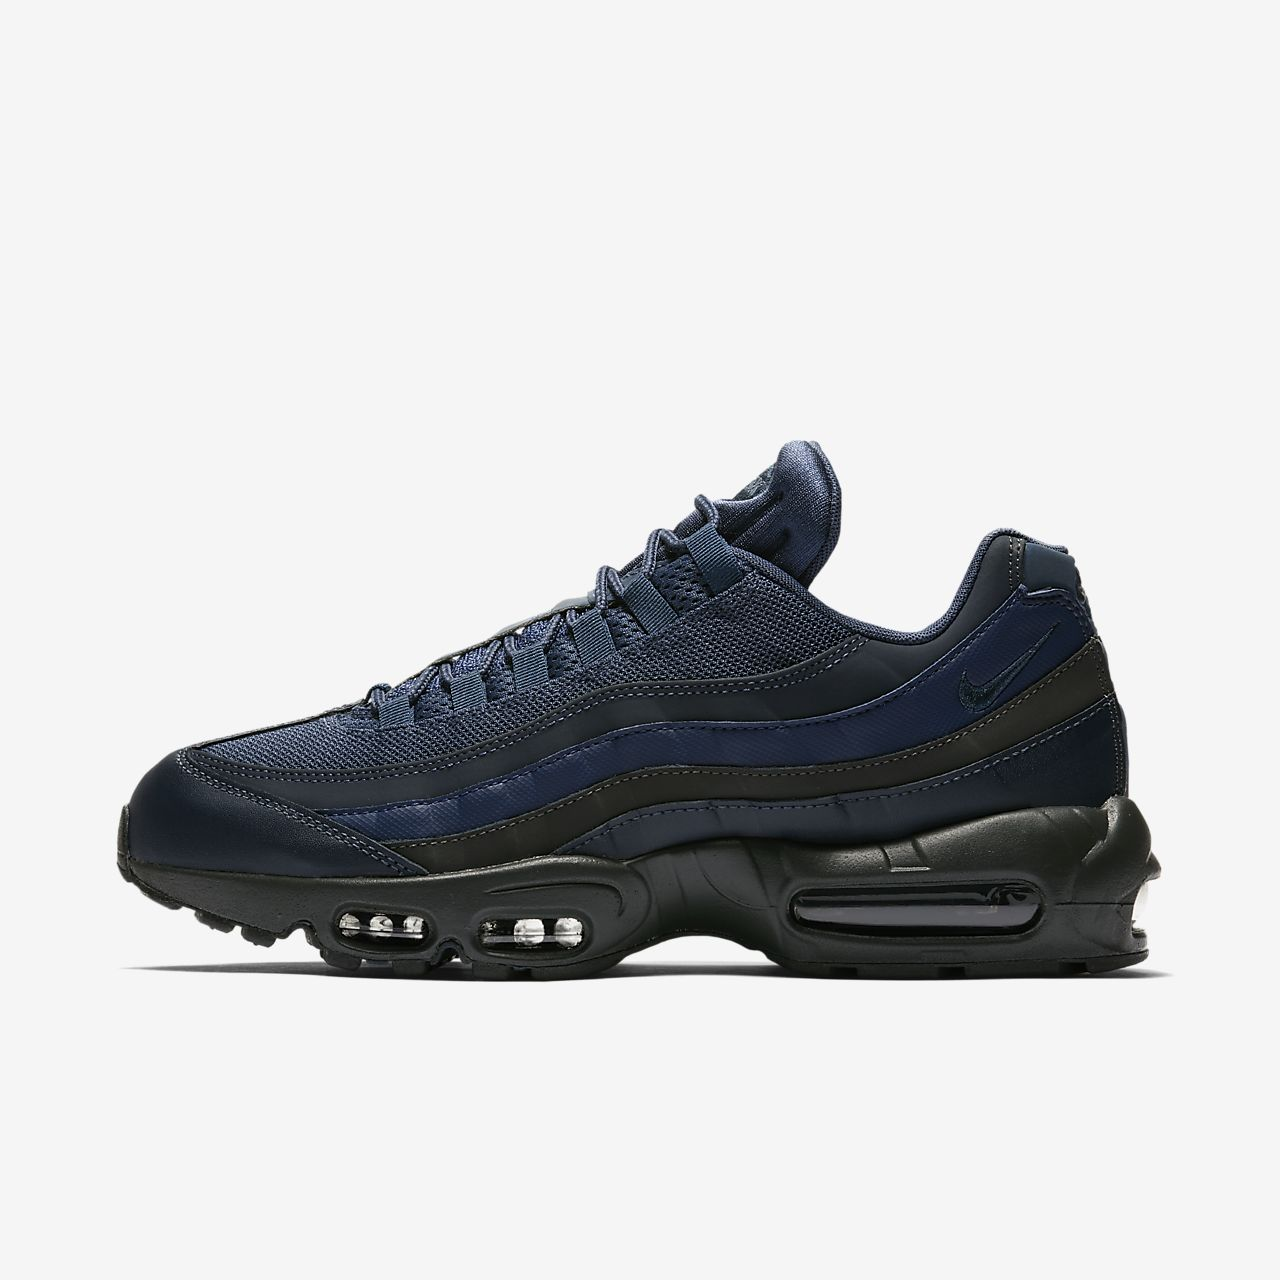 innovative design 9e636 934da Men s Shoe. Nike Air Max 95 Essential